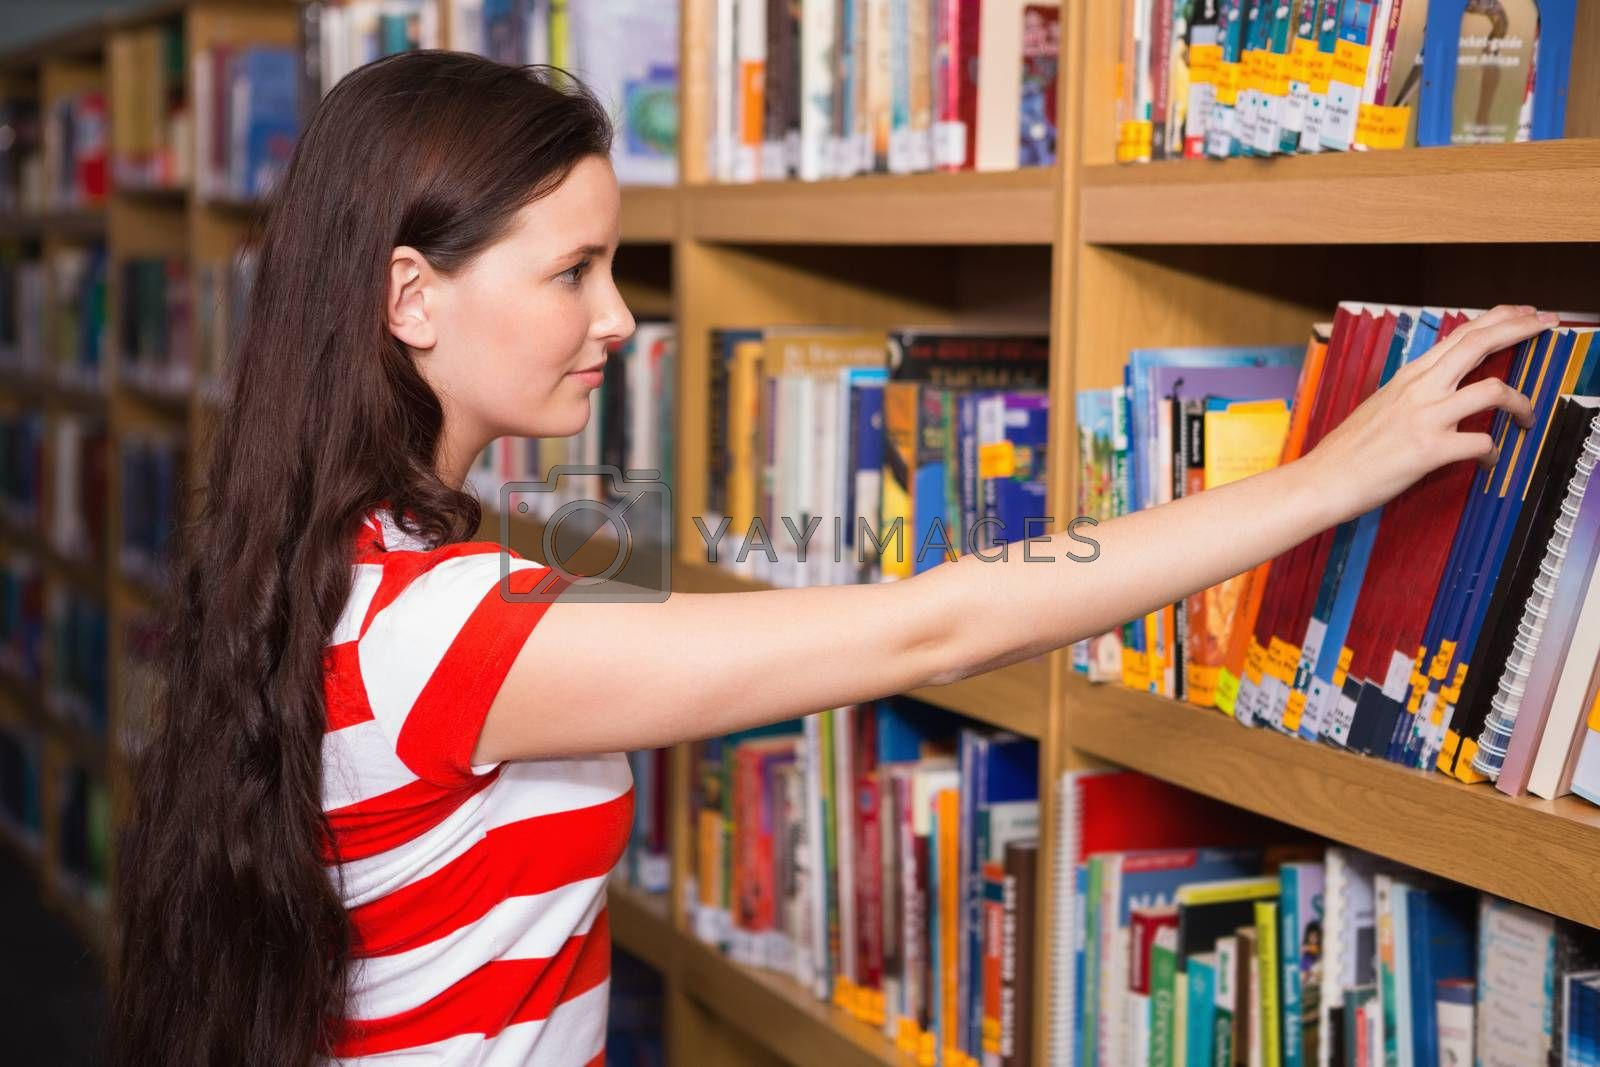 Pretty student taking book from shelf in library by Wavebreakmedia